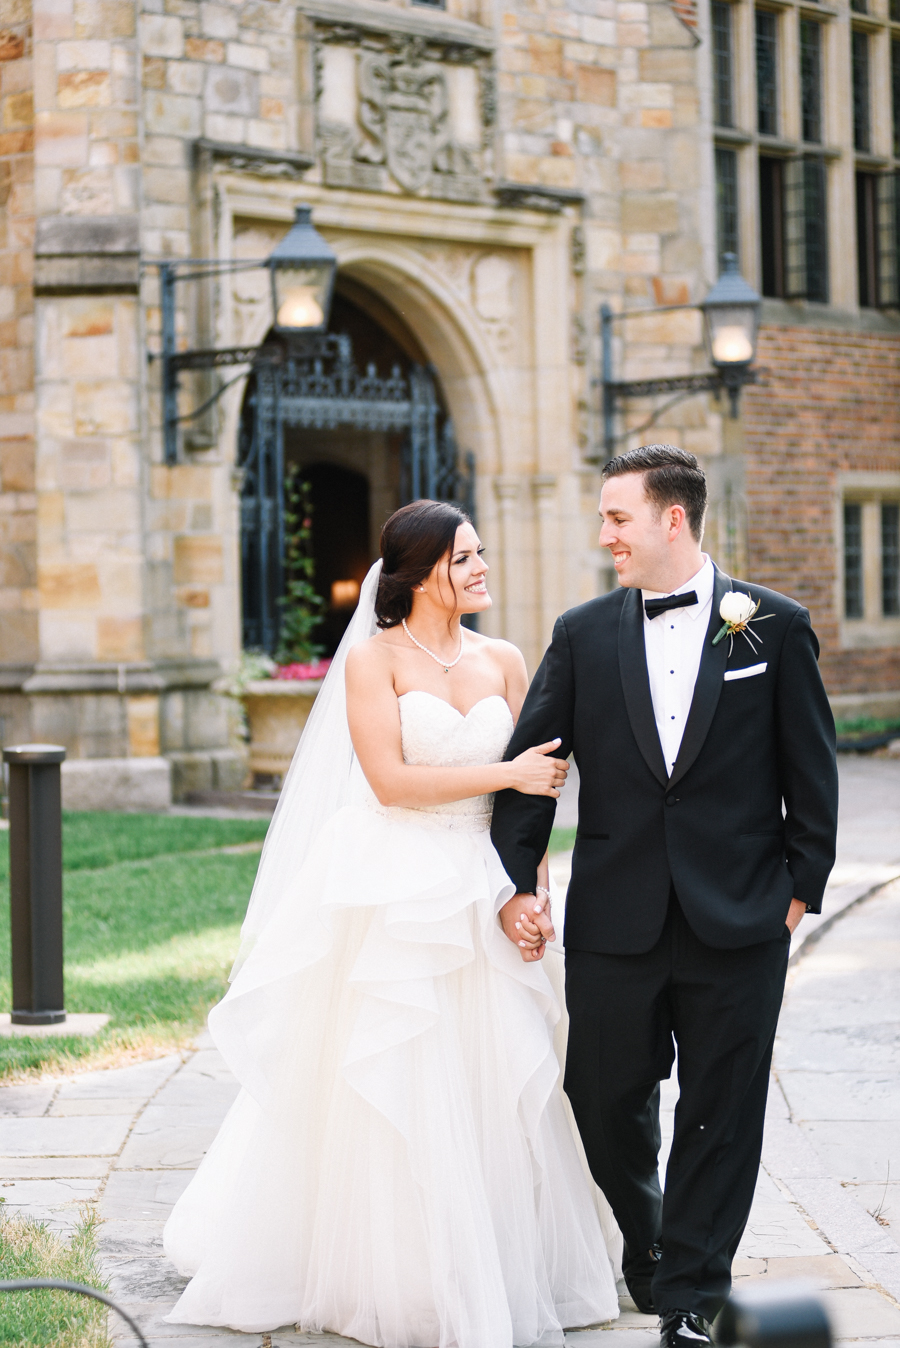 MeadowbrookHall_Wedding_Rochester_MI-43.jpg